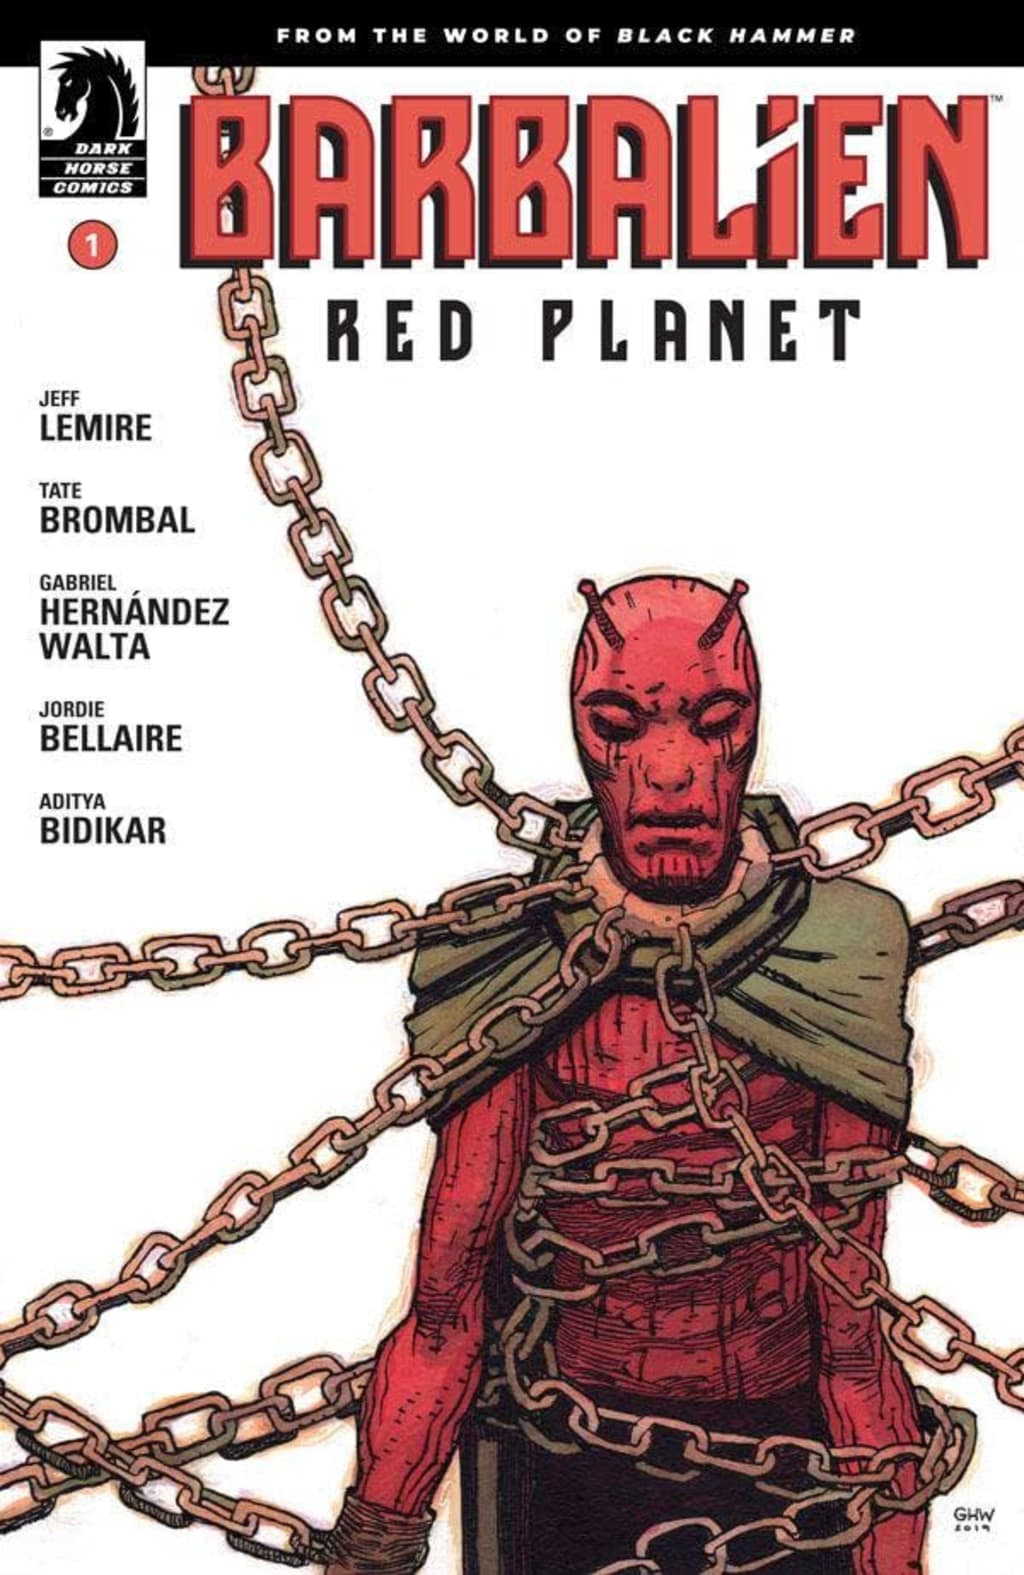 Barbalien Red Planet #1